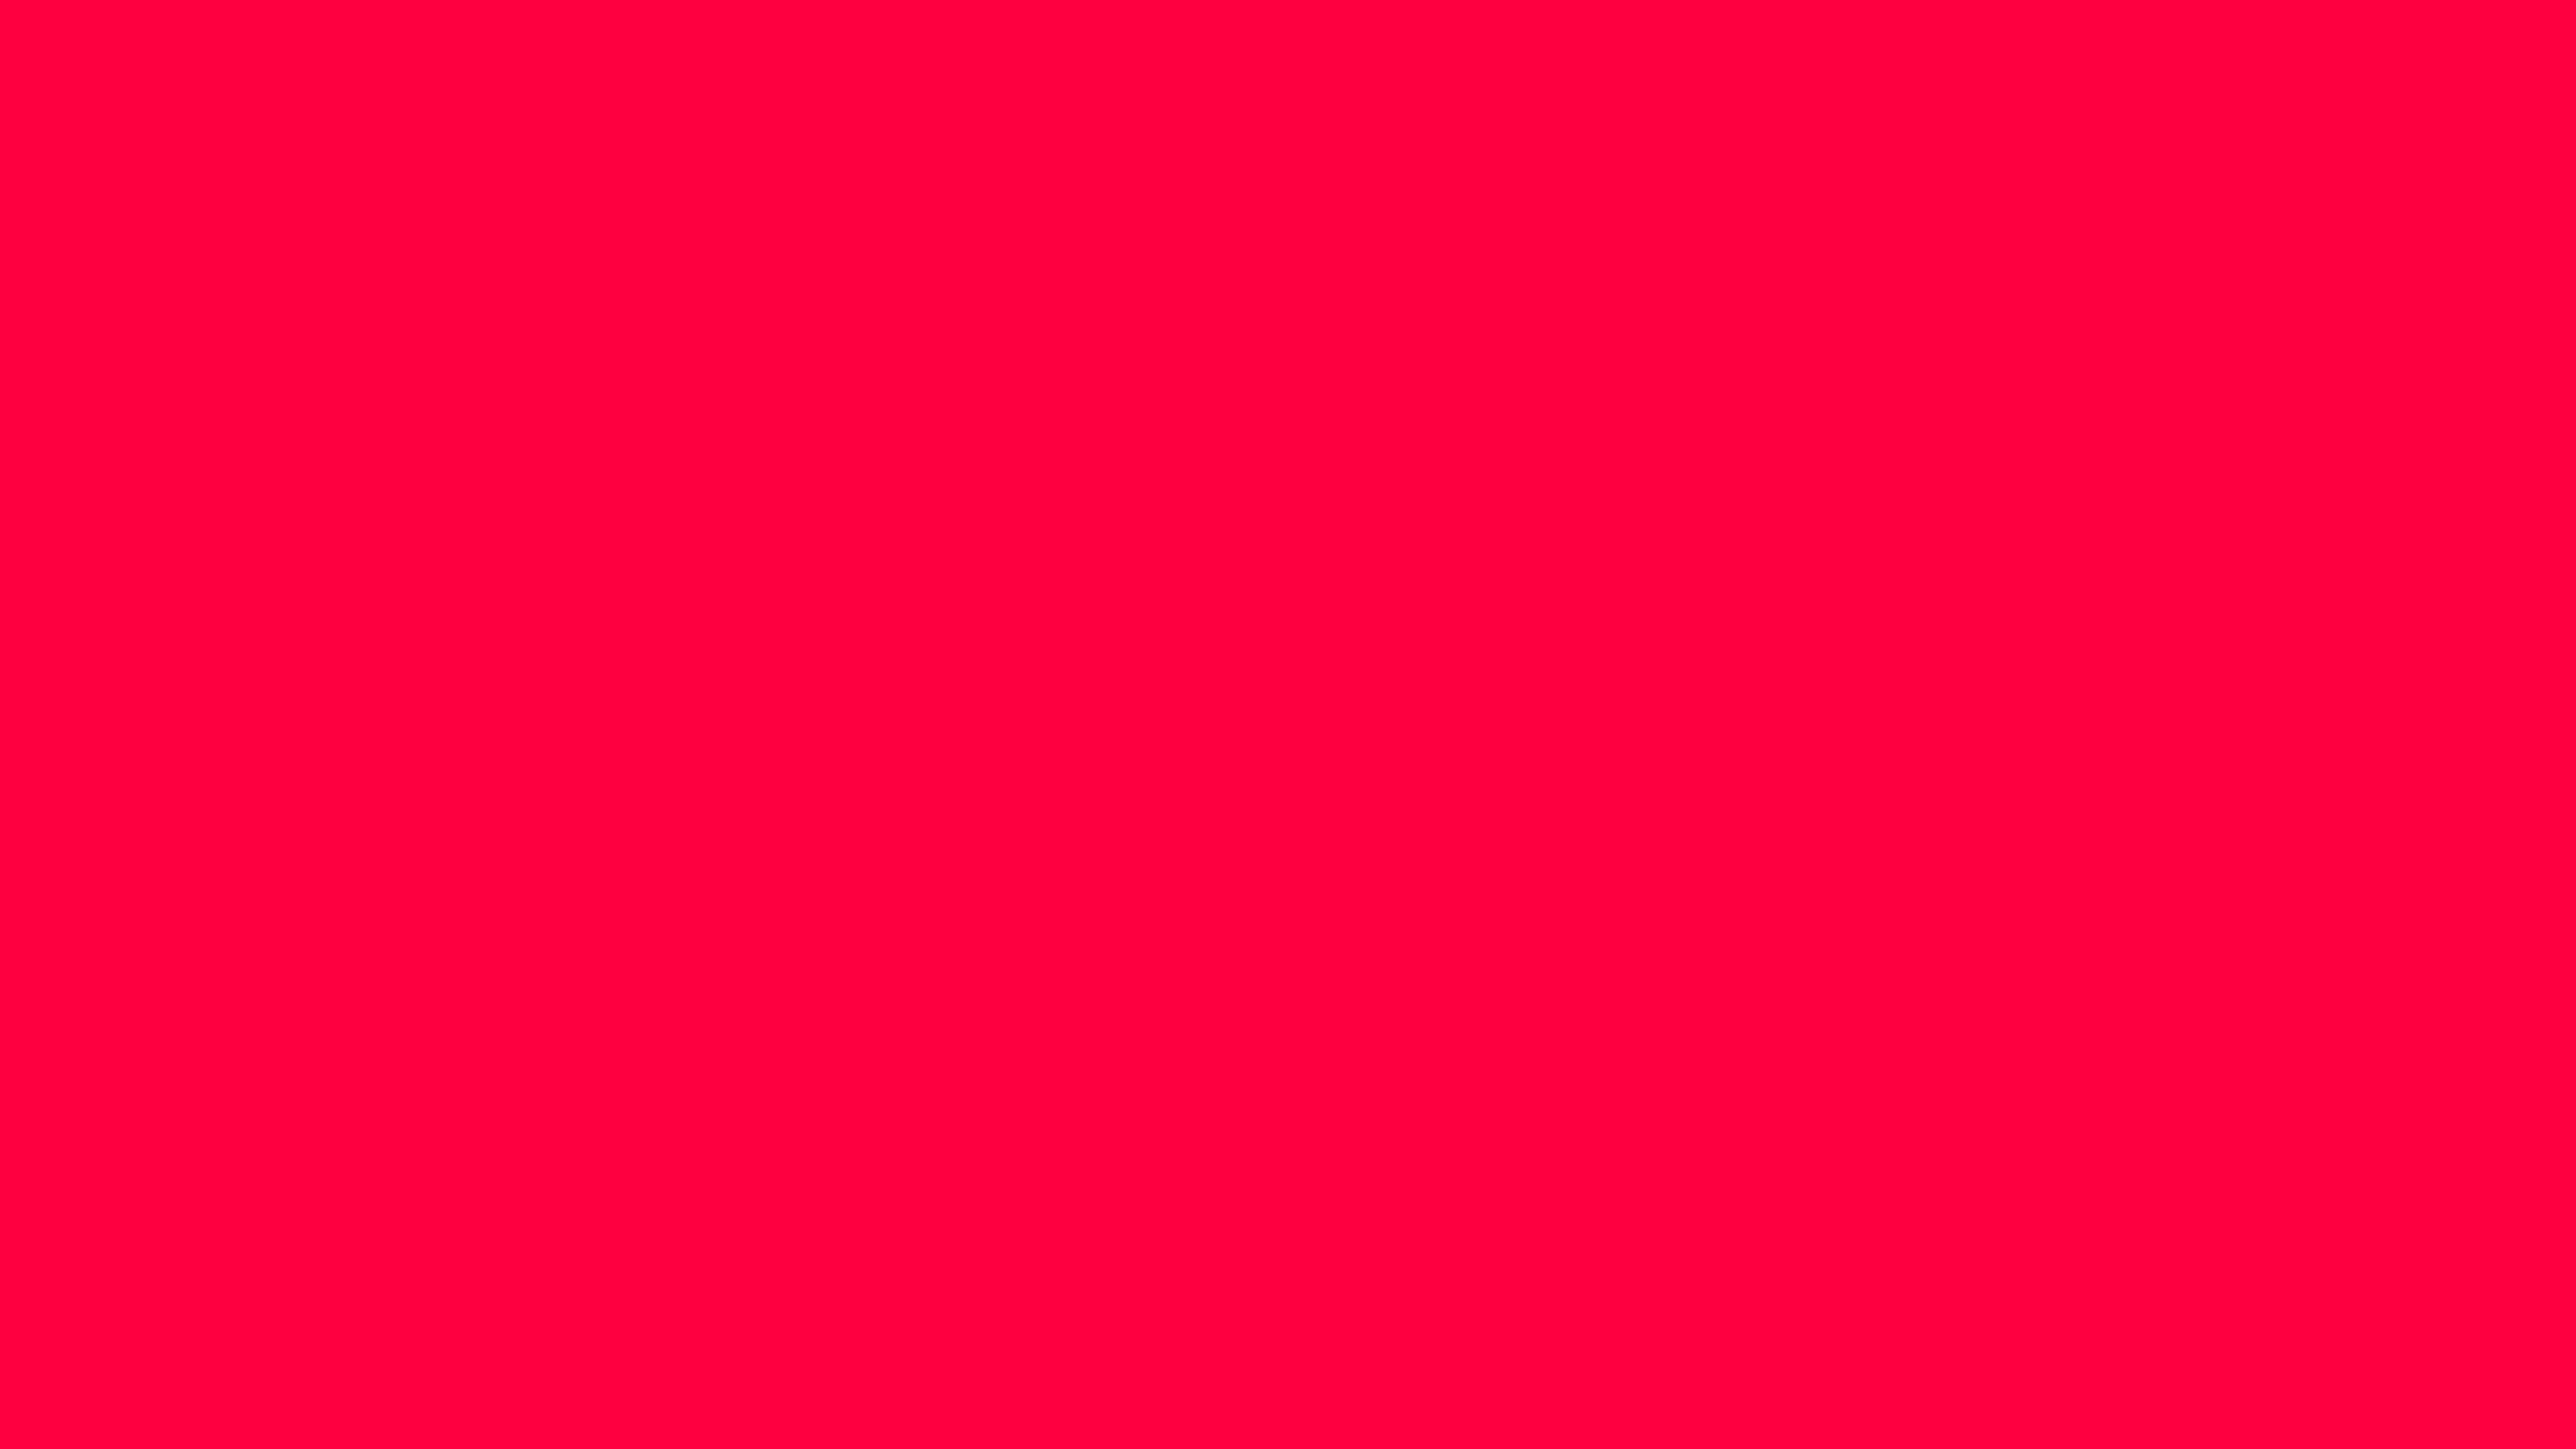 5120x2880 Electric Crimson Solid Color Background